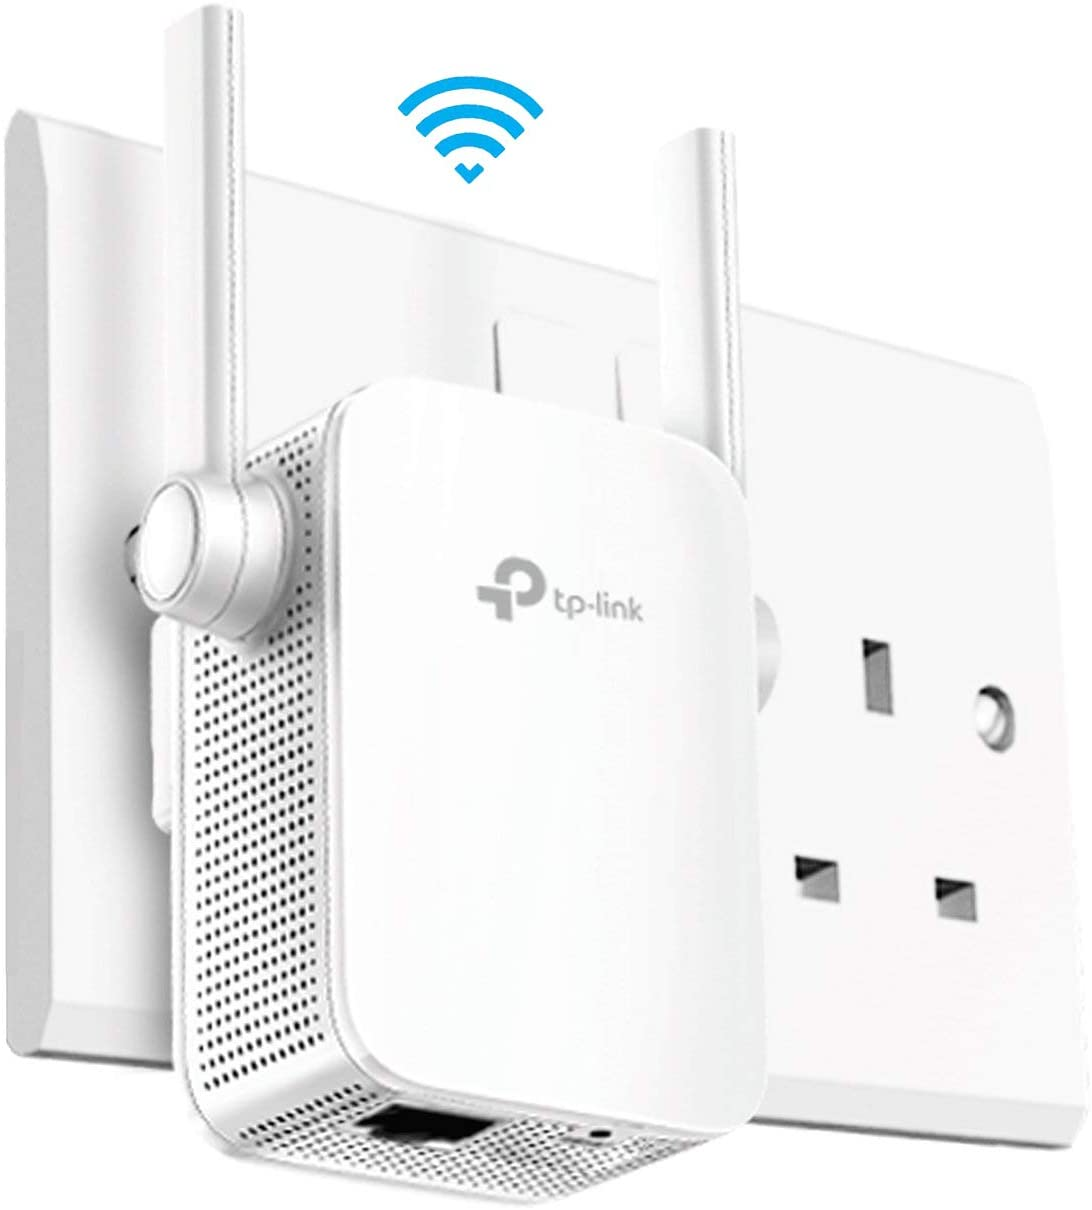 Best Wi-Fi Repeaters/Range Extenders/Wi-Fi Boosters in India in 2020